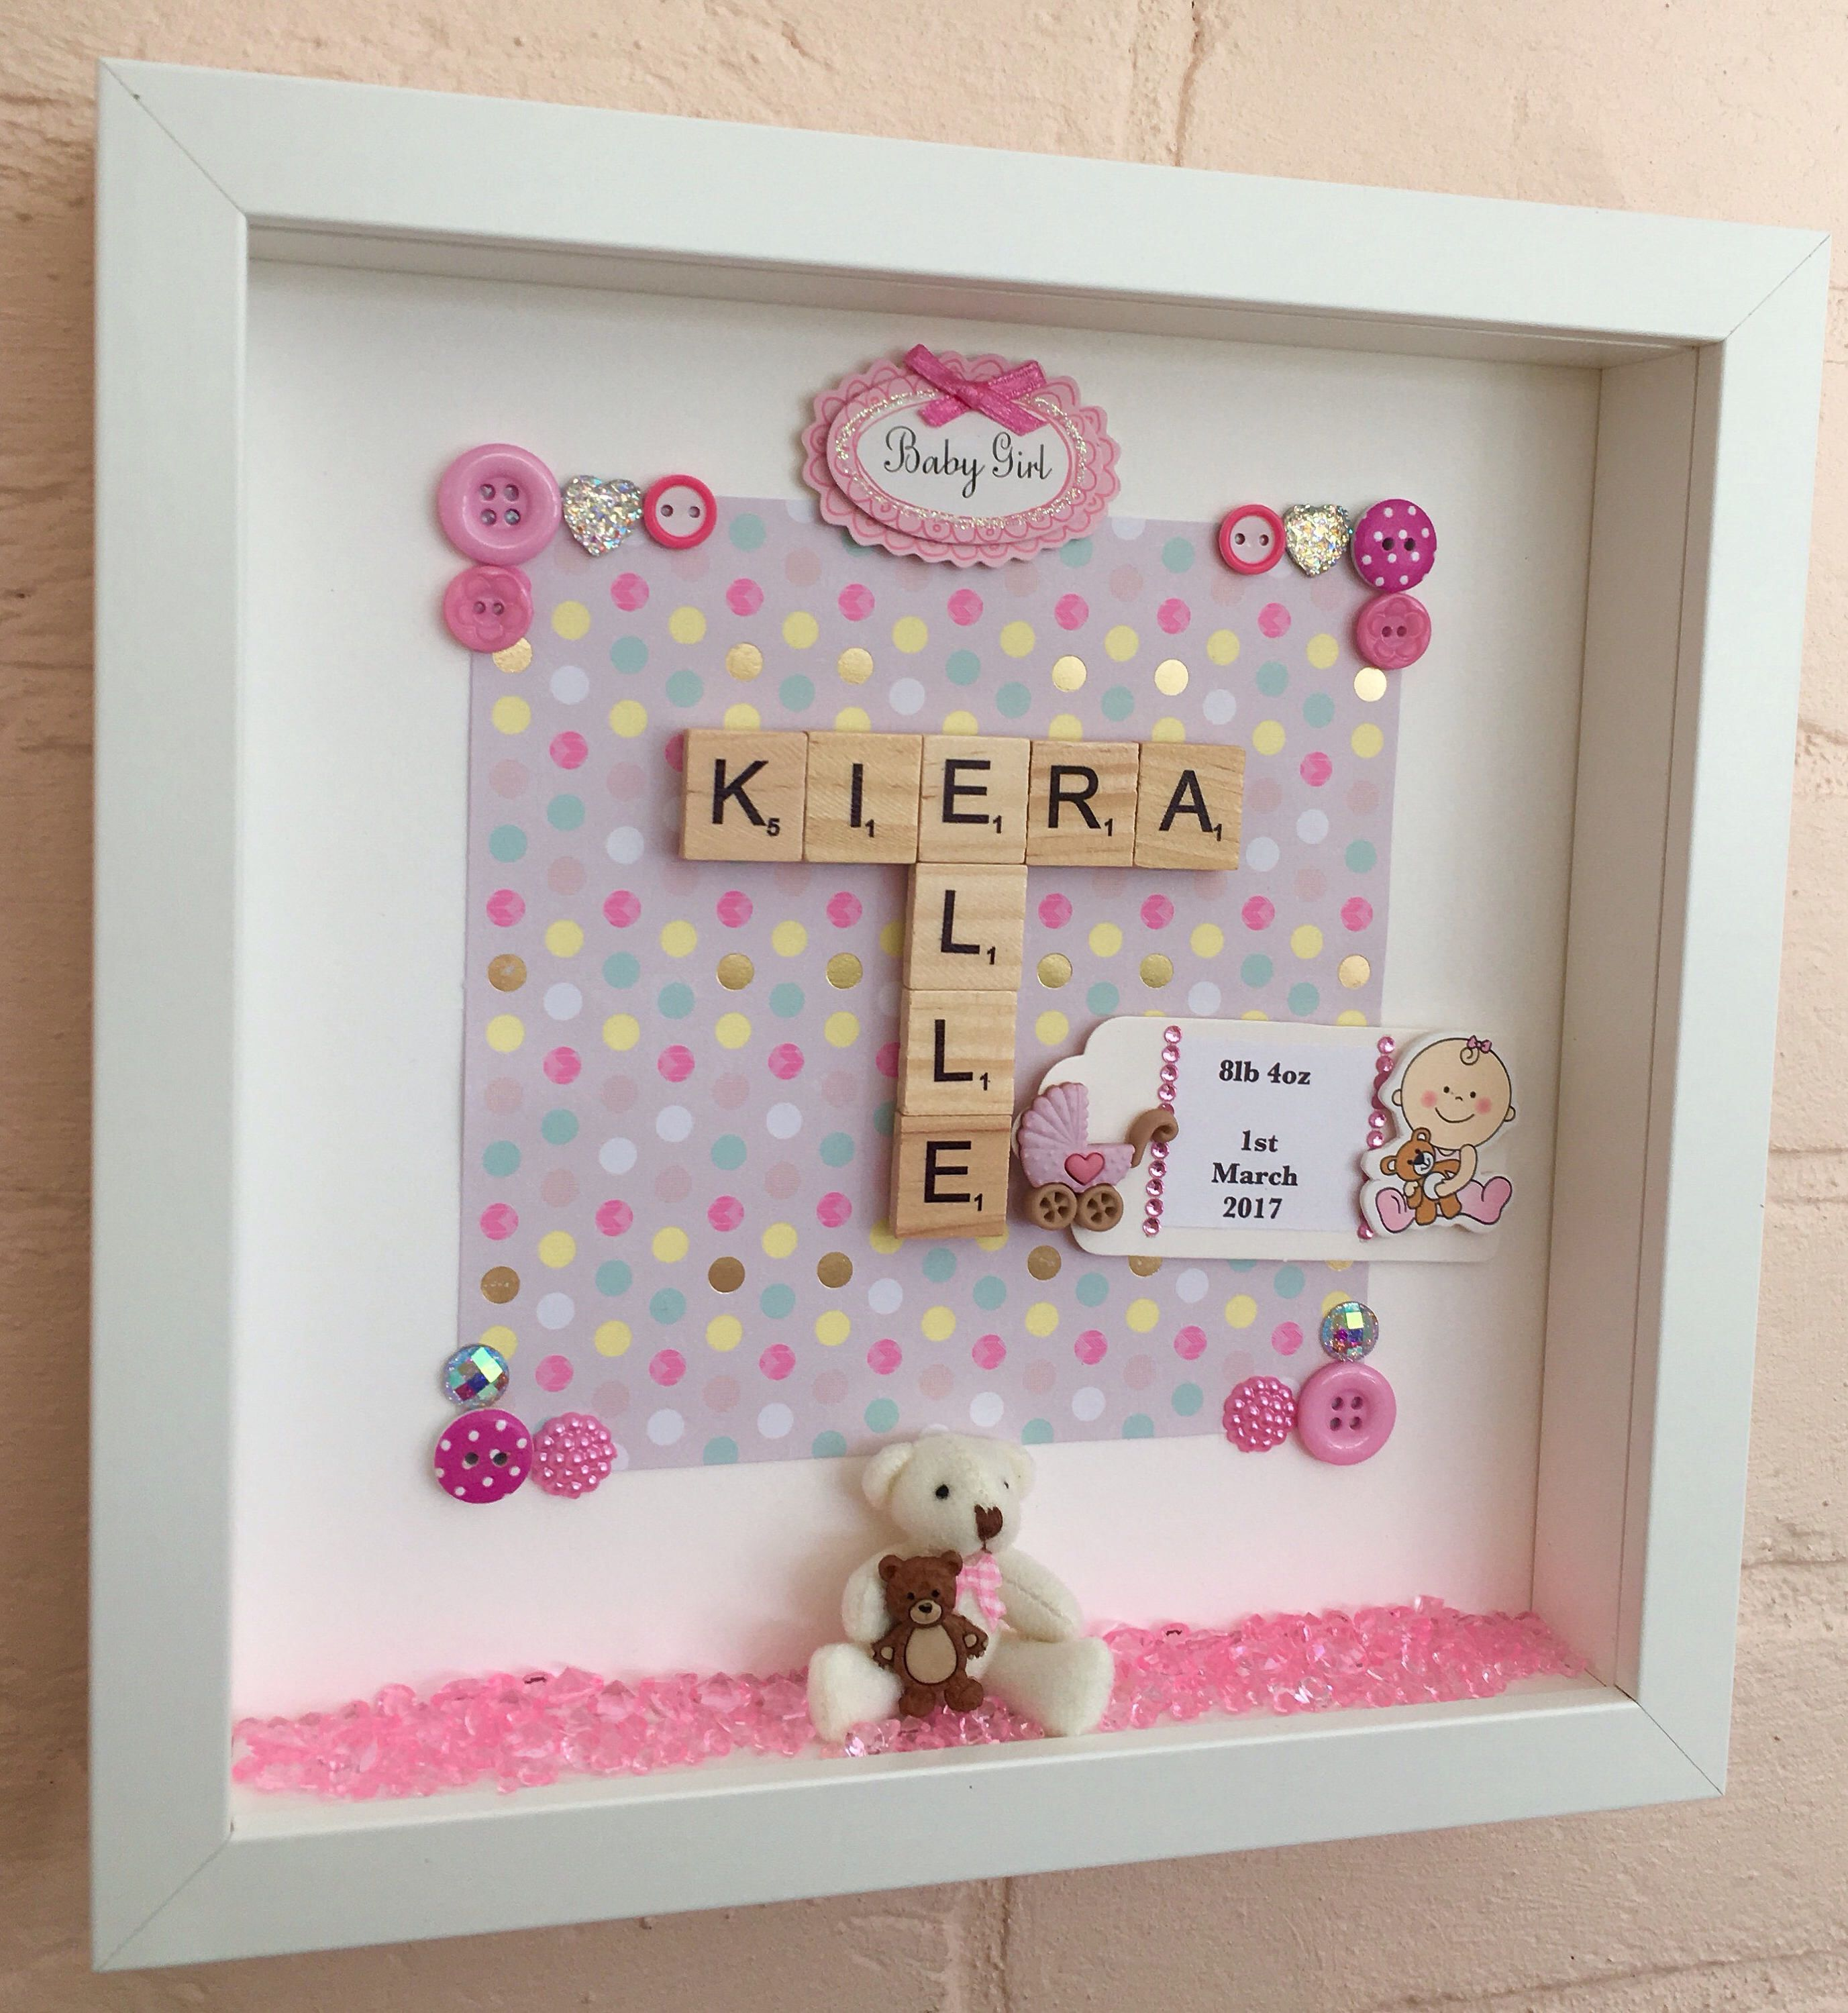 New baby gift baby girl gift baby name frame baby teddy bear new baby gift baby girl gift baby name frame baby teddy bear frame negle Images